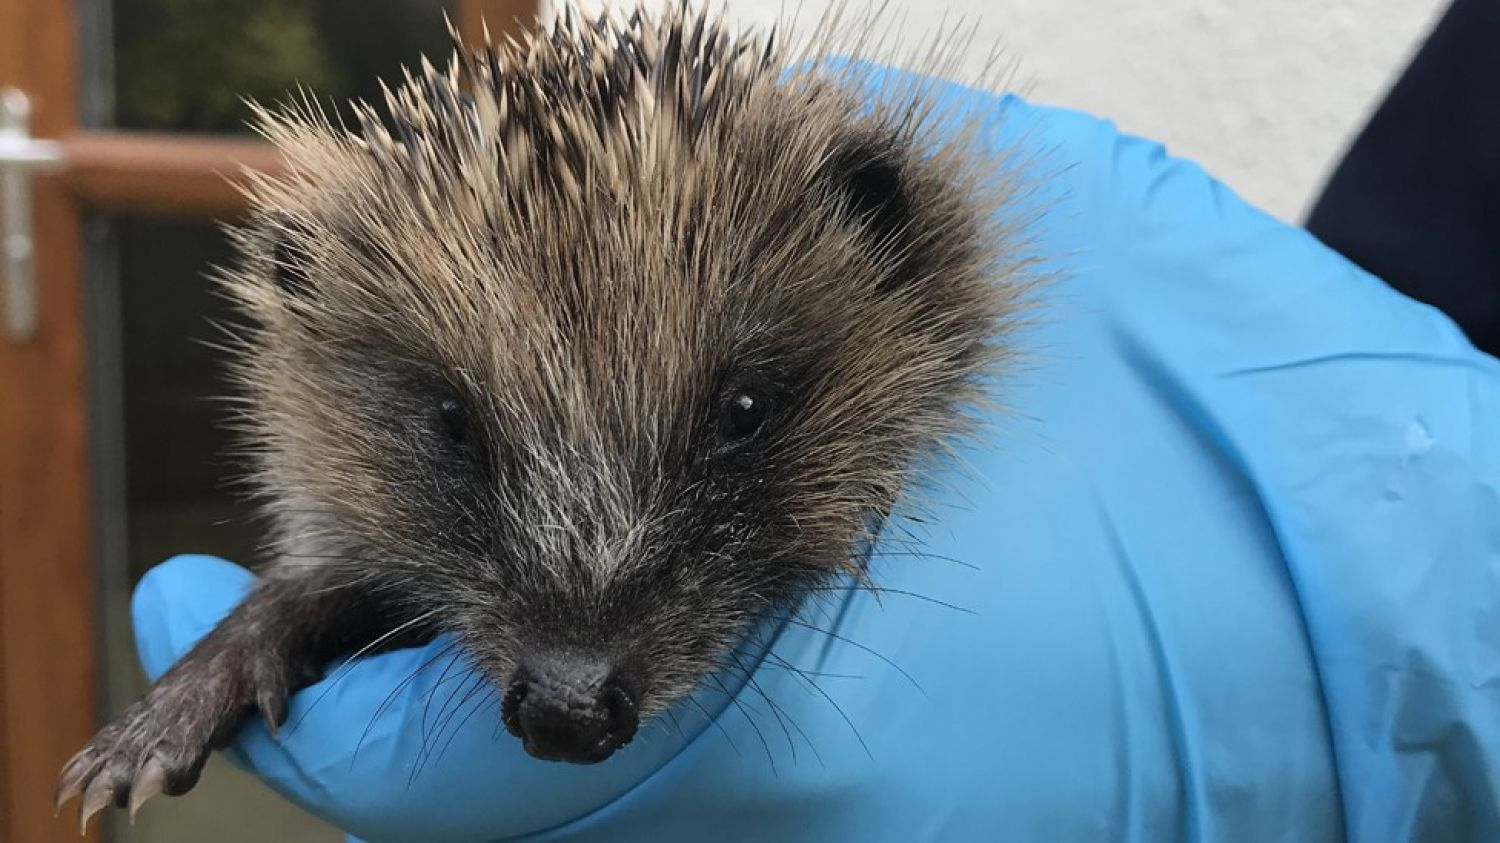 Mr. Prickles finds new home following rescue from drain